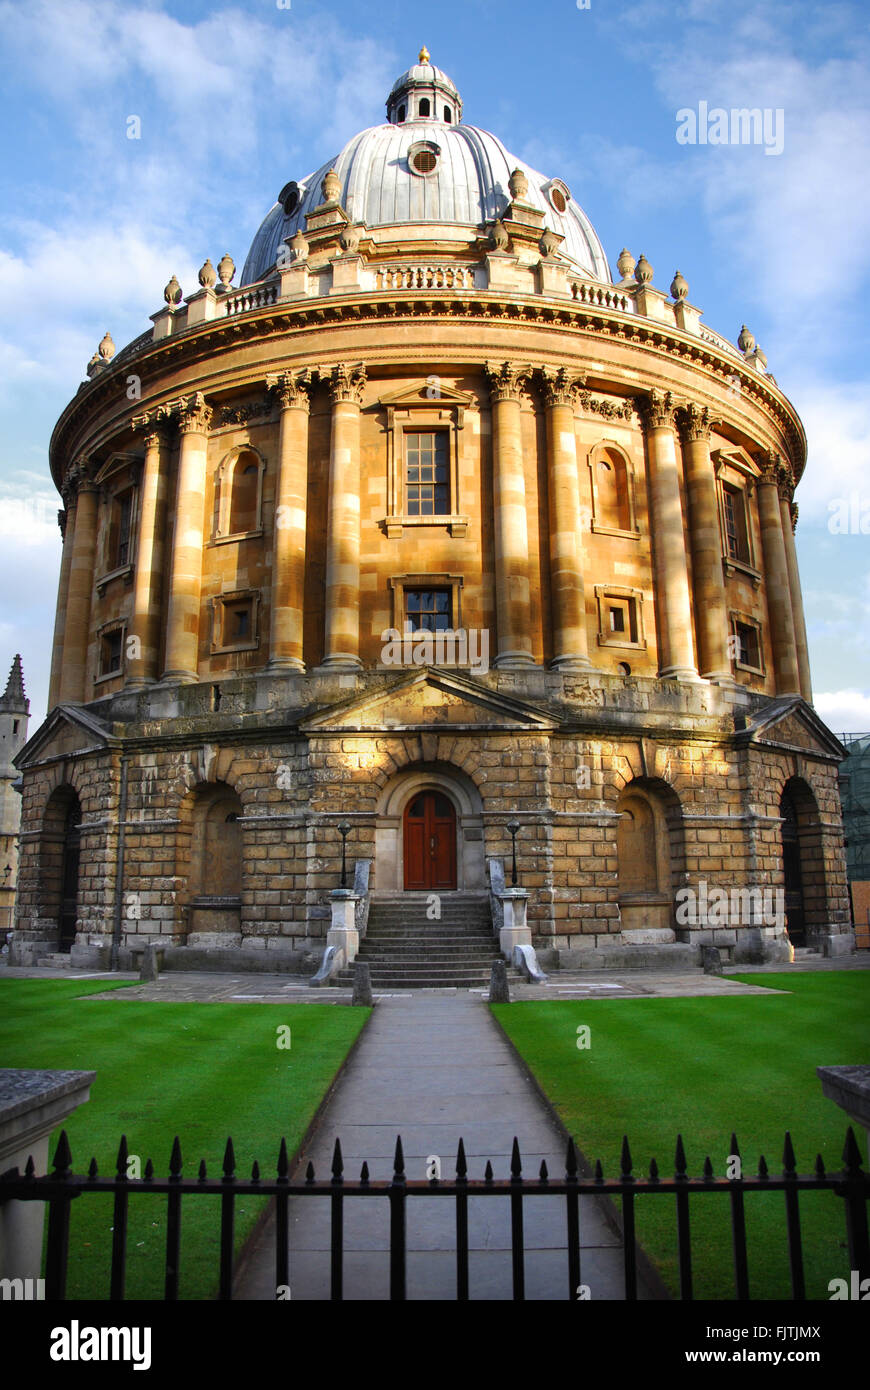 Radcliffe Camera Oxford United Kingdom - Stock Image